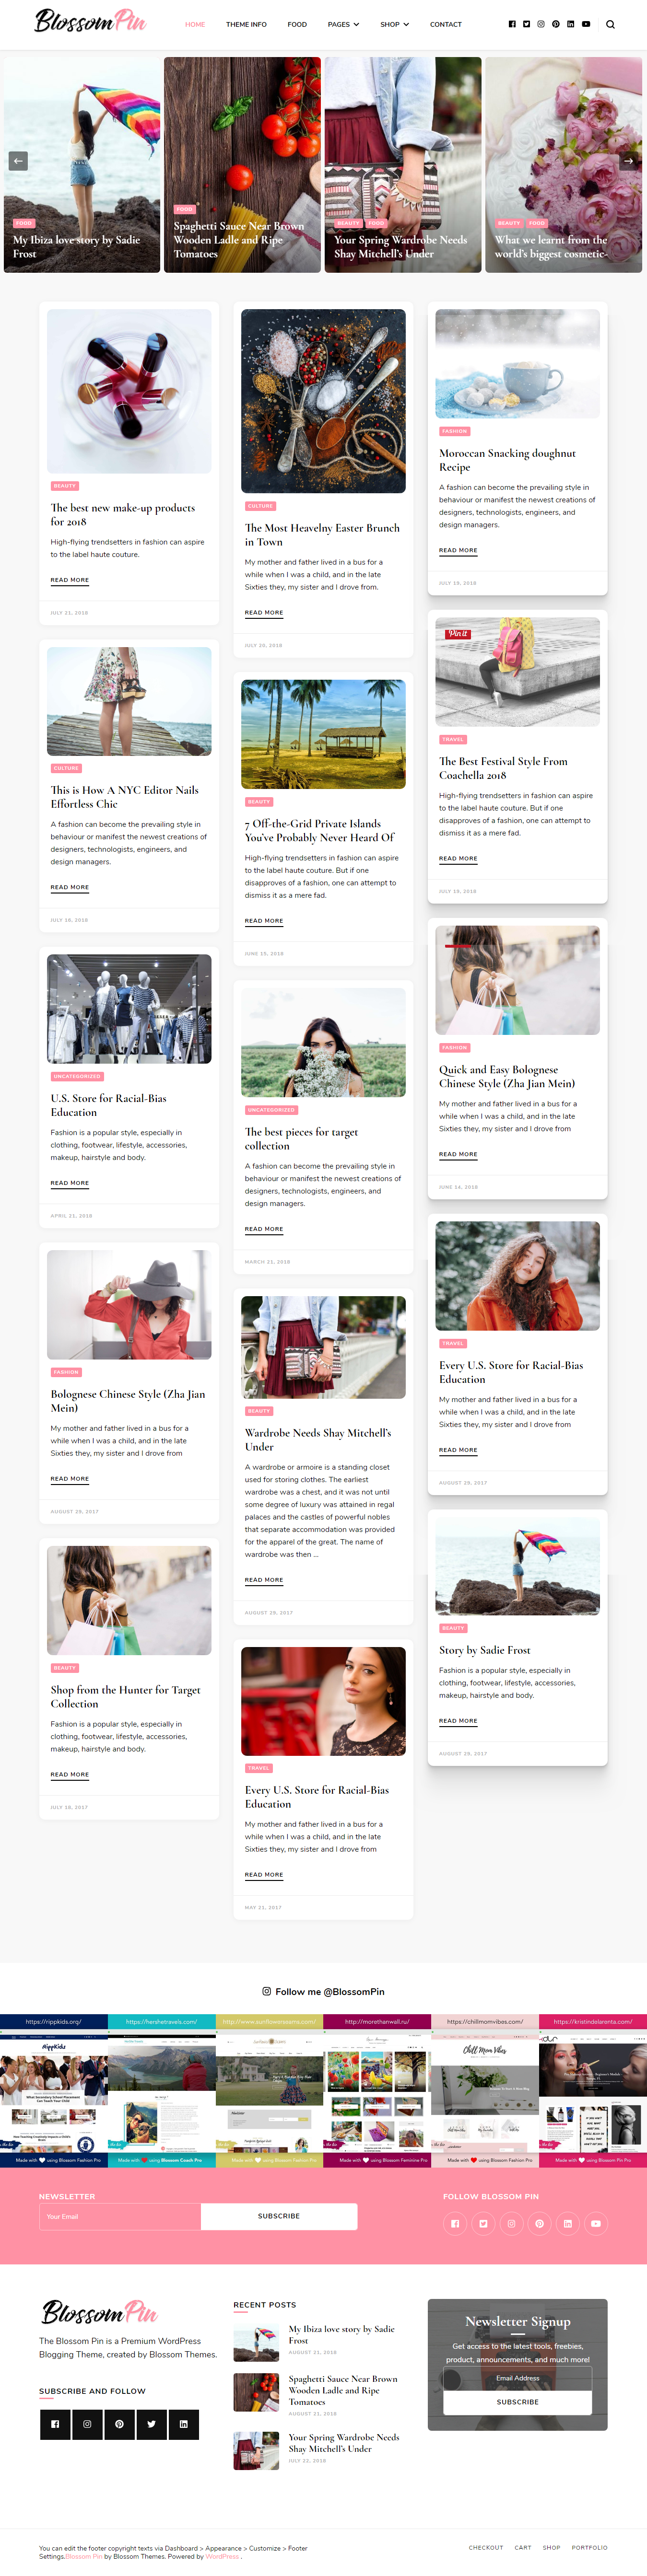 blossom pin best free fashion wordpress theme - 10+ Best Free Fashion WordPress Themes